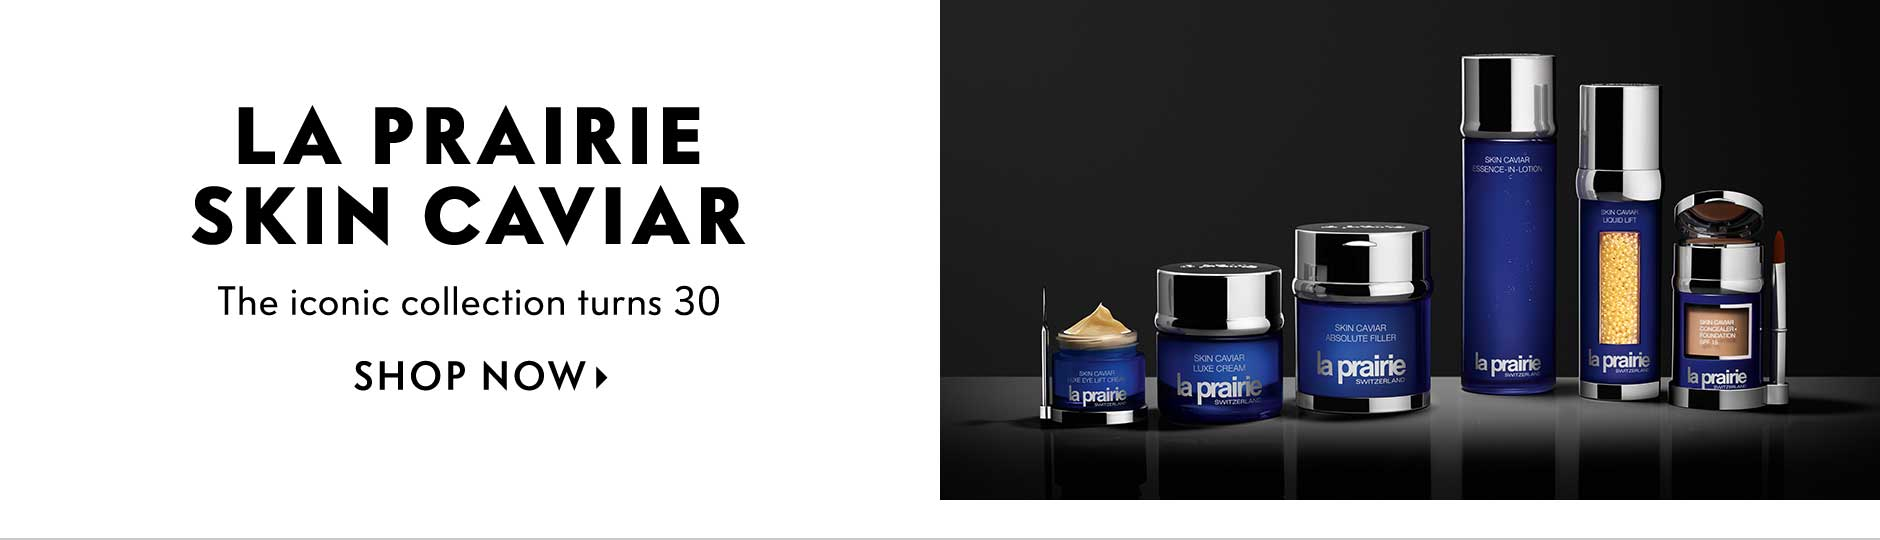 La Prairie Lookbook